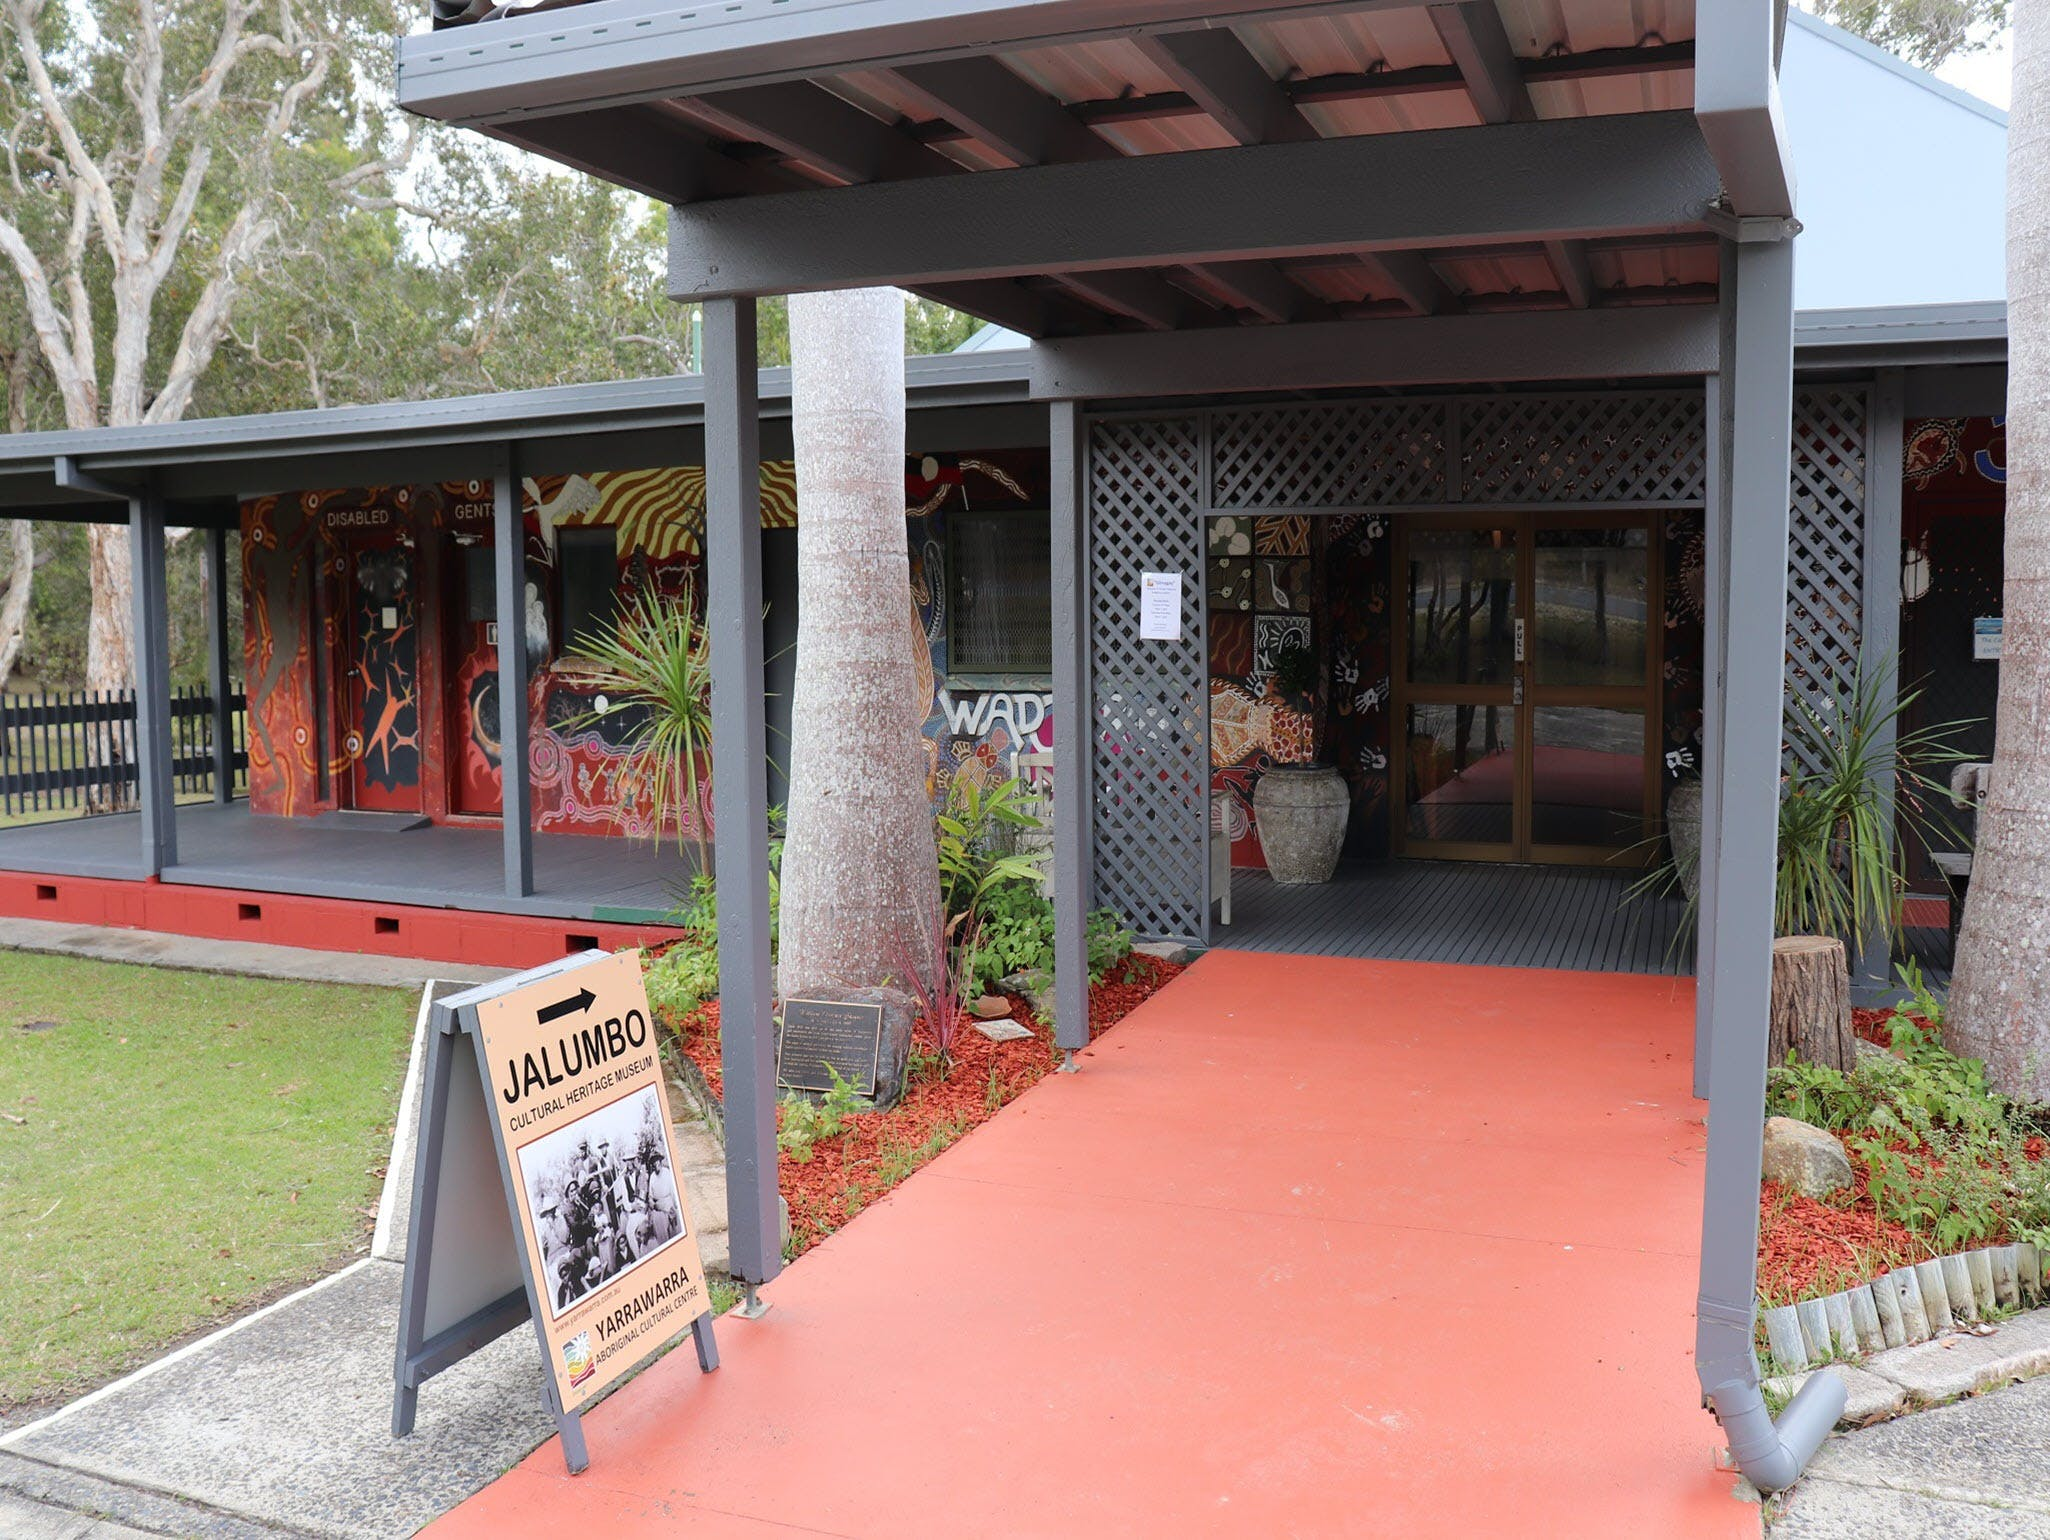 Yarrawarra Aboriginal Cultural Centre - Find Attractions